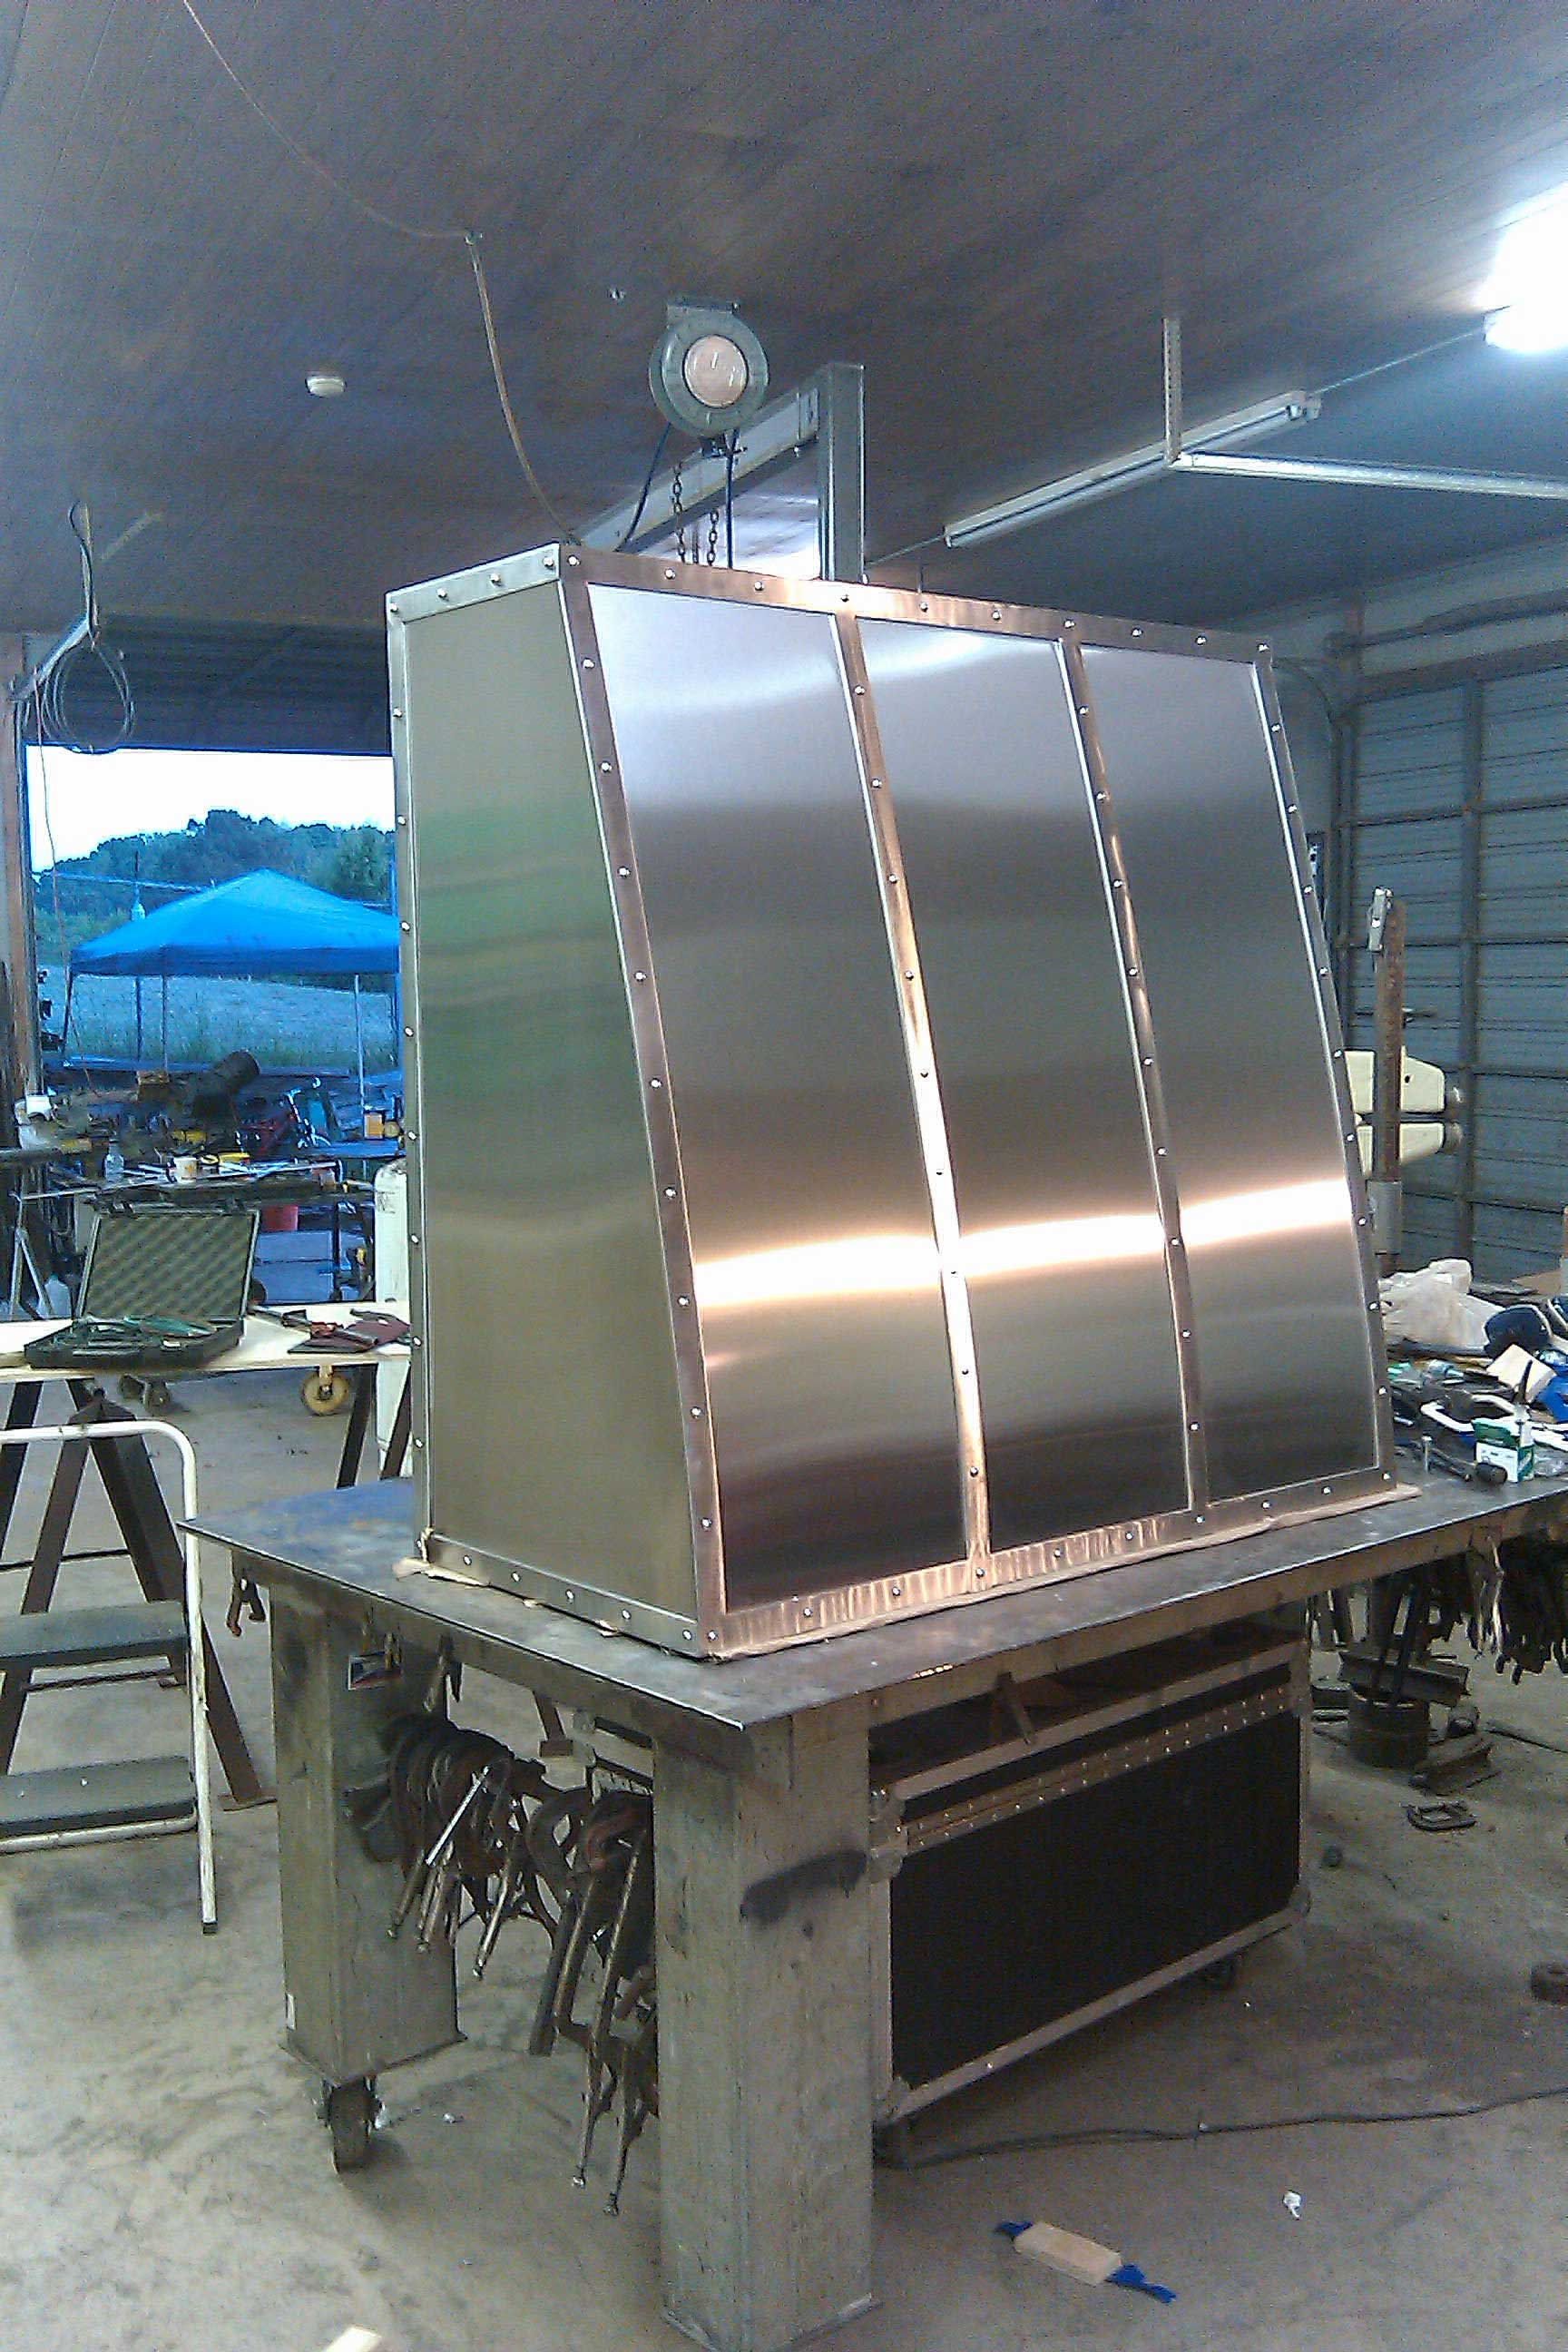 Alabama. Stainless hood. (3 of 3)